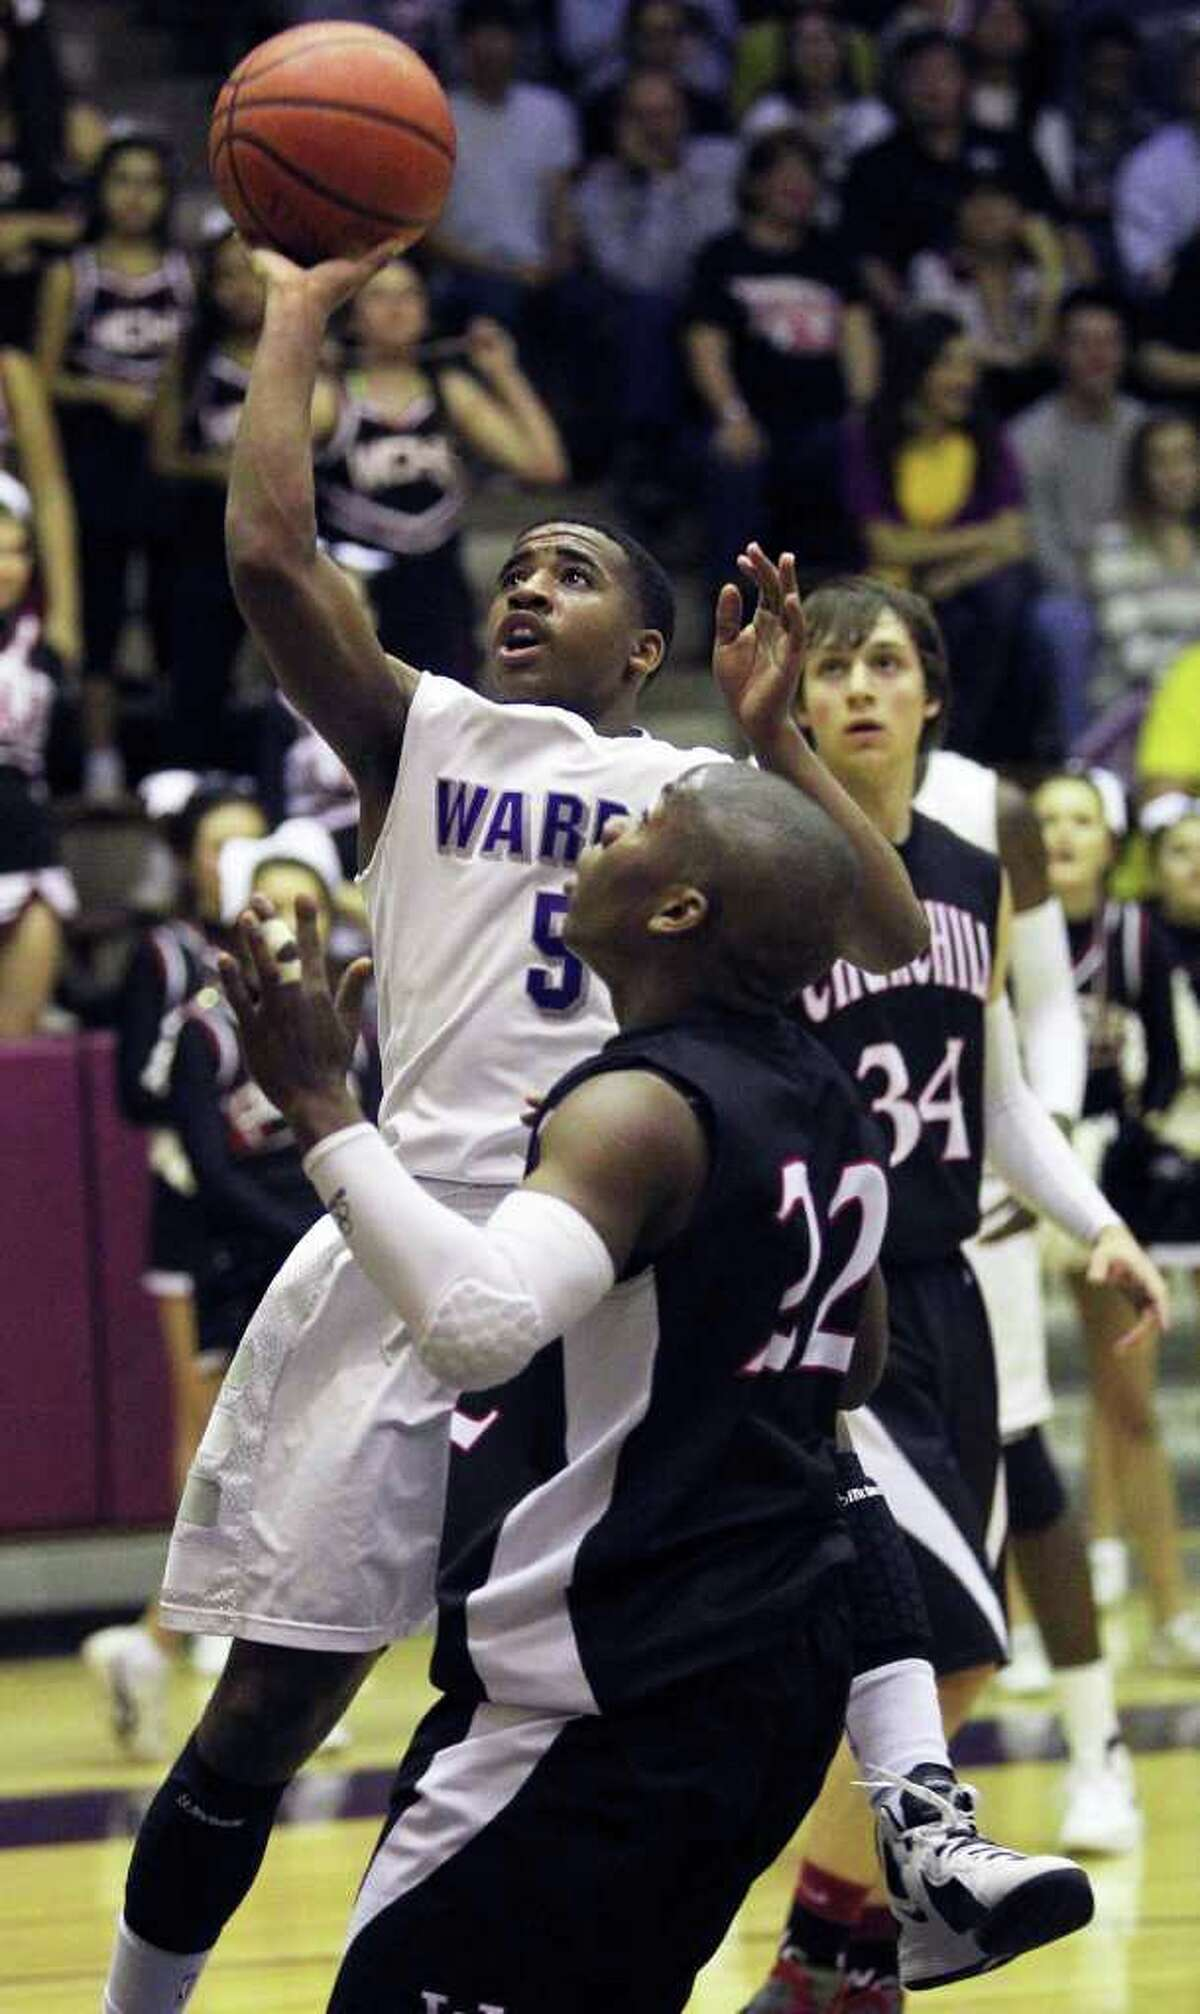 Marcus Keene scores all 11 of Warren's fourth-quarter points, including the game-winning shot with 1.4 seconds left, giving the Warriors a thrilling 77-76 victory over Churchill.